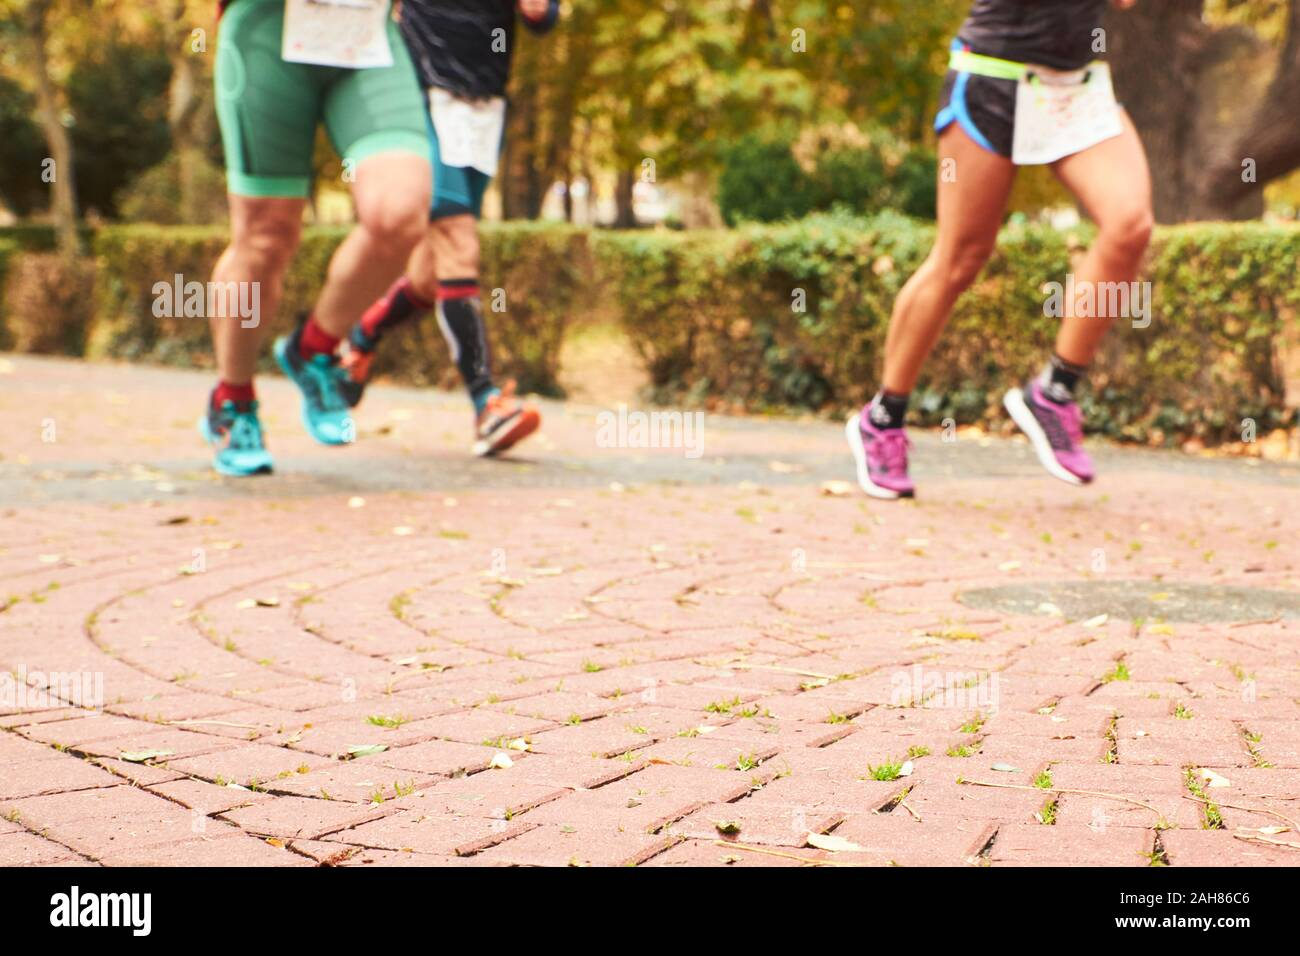 legs of runners a day's race in a park. sport concept. image with blur for background Stock Photo